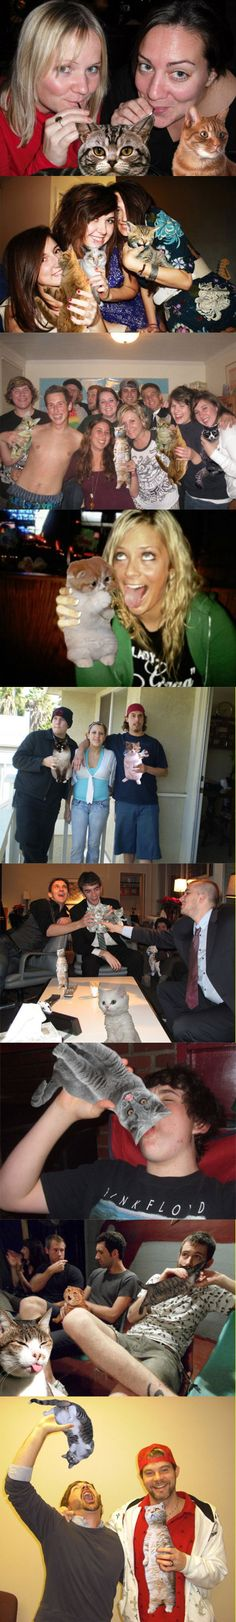 How to properly hide alcohol in your Facebook pictures! This is hilarious!!!